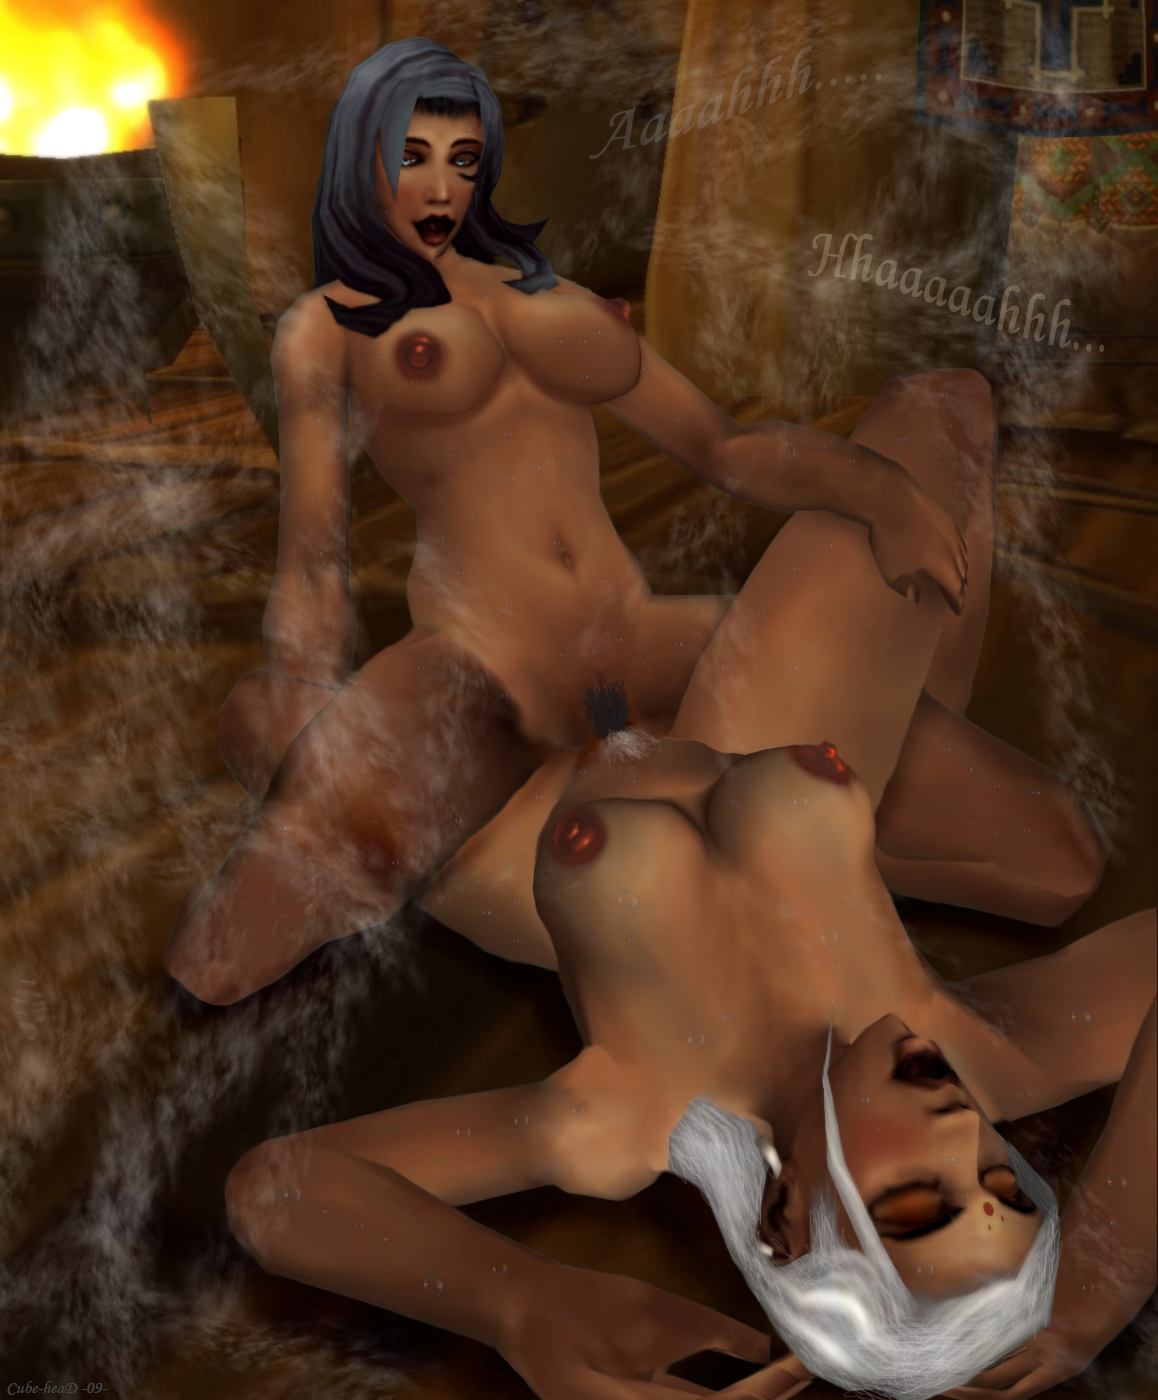 Hottest 3d elf jizzart videos erotica download